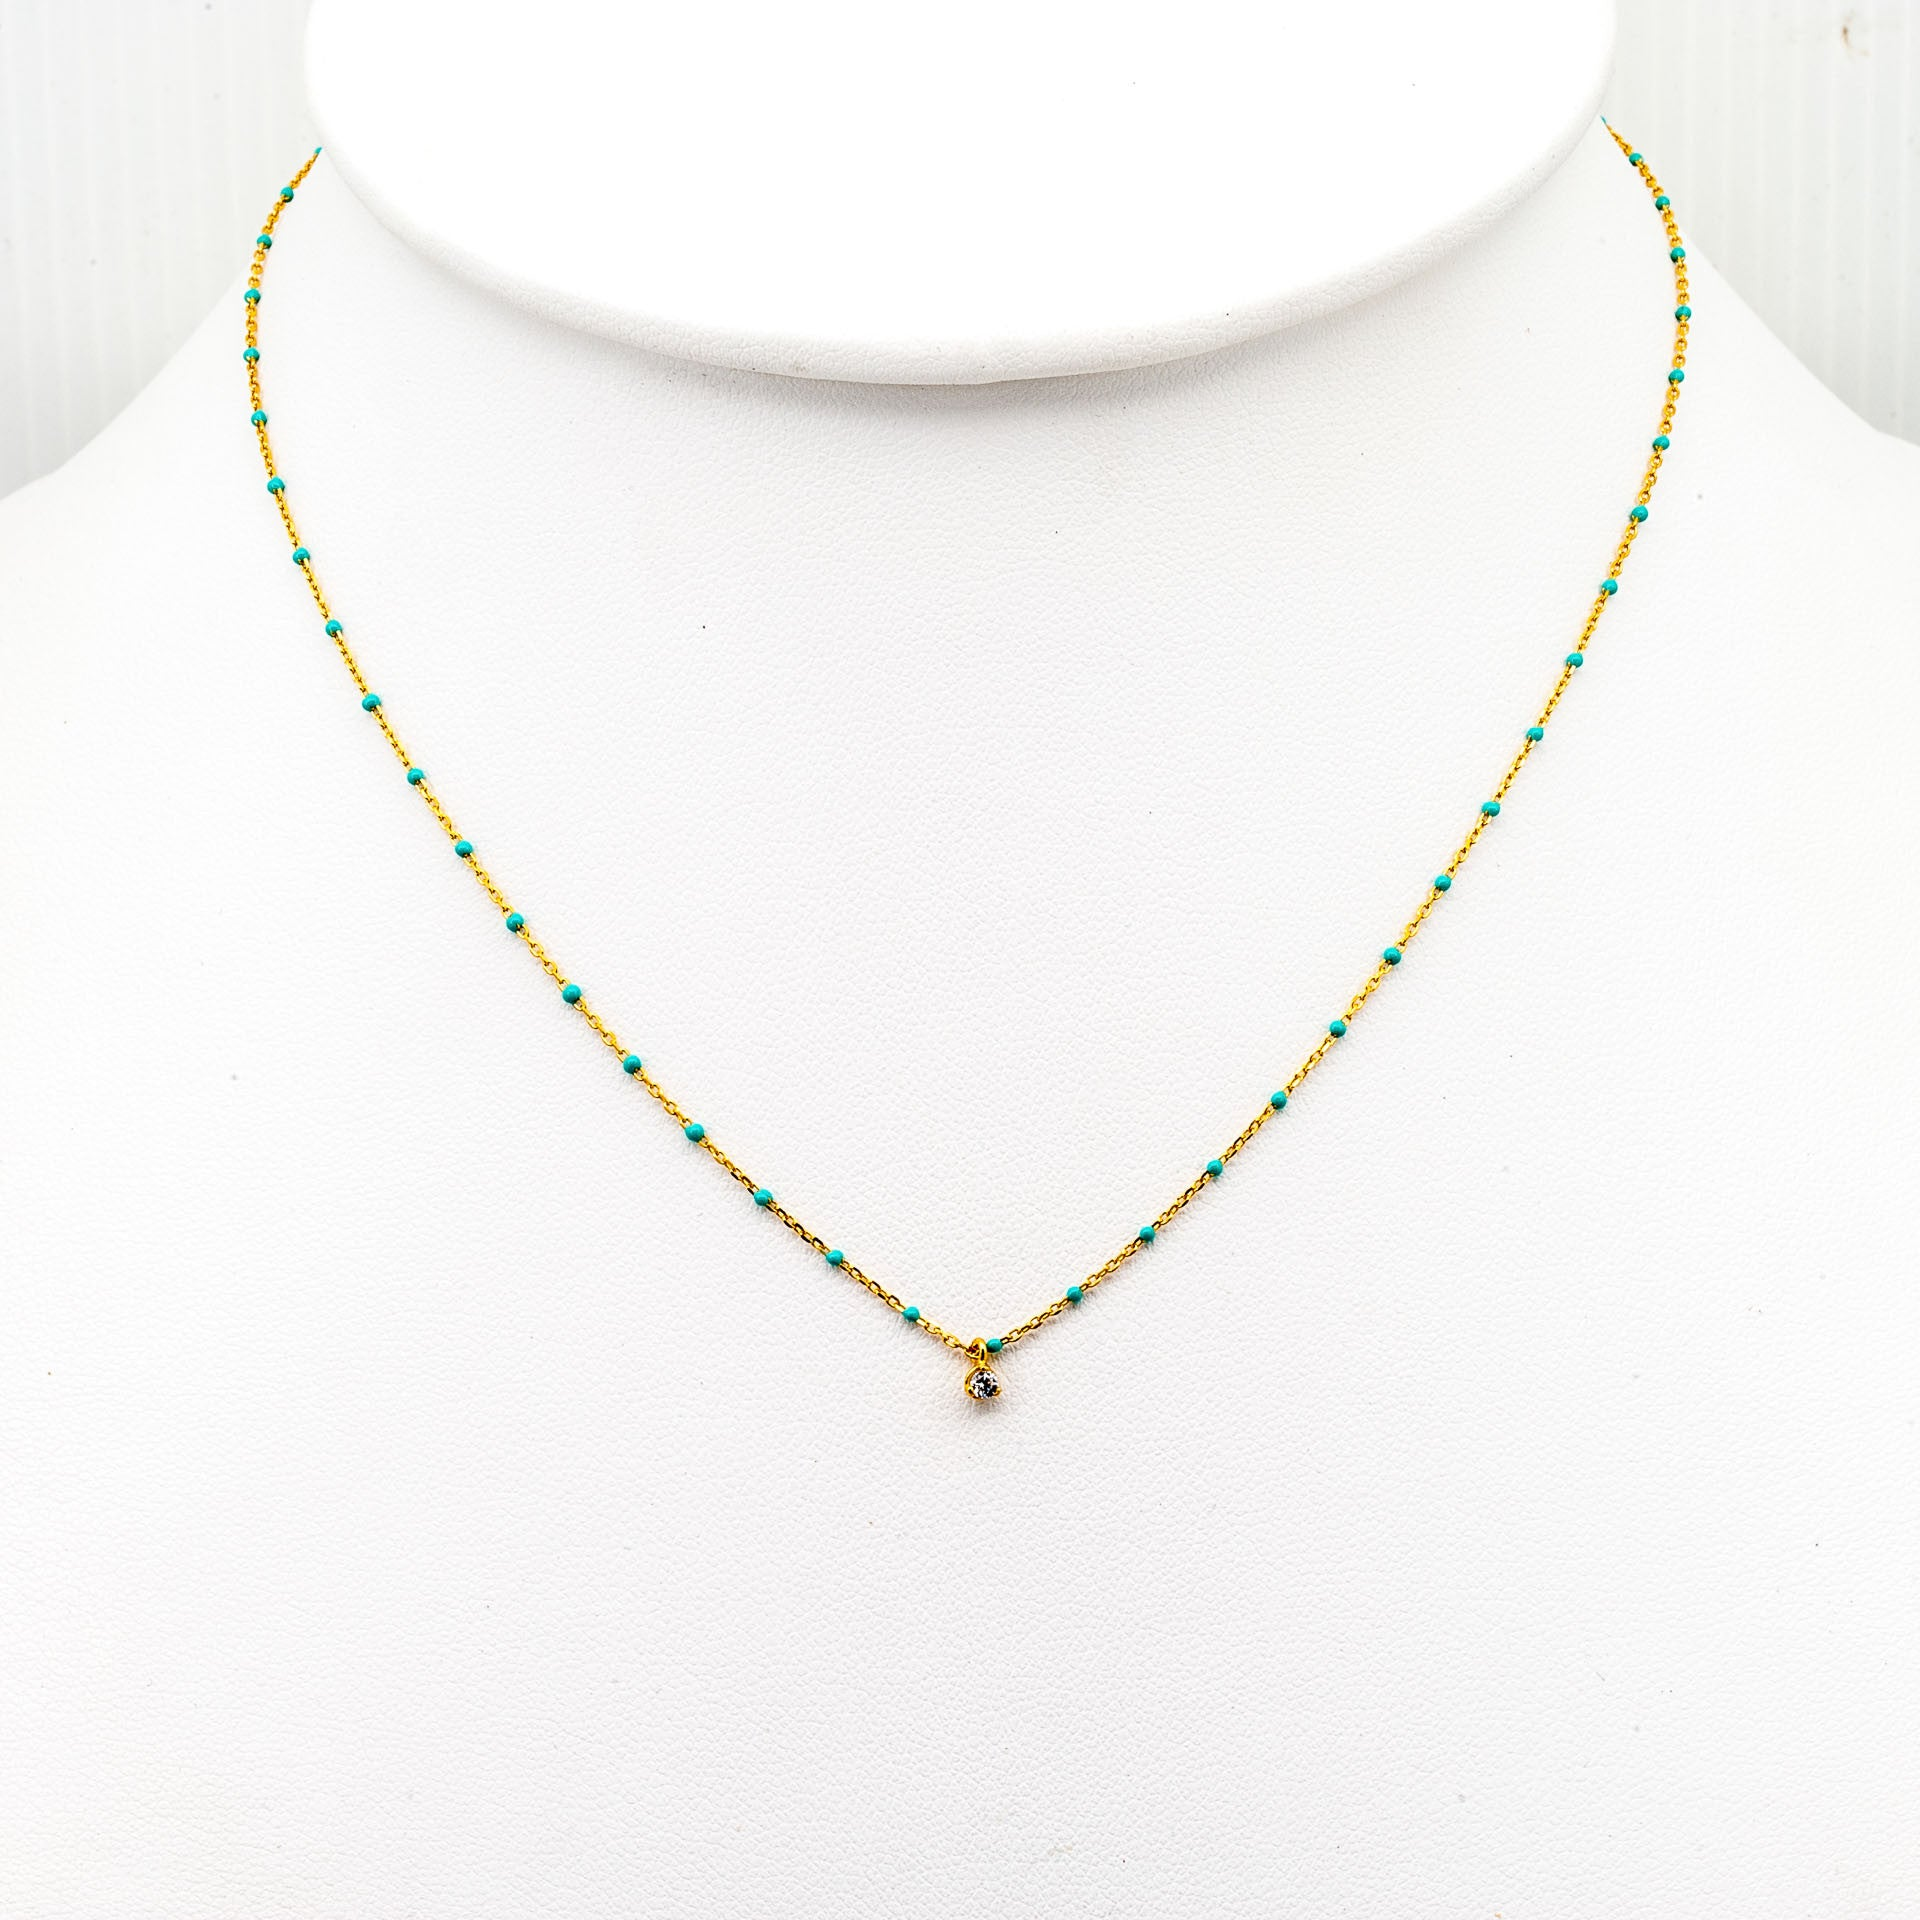 GOLD VERMEIL ENAMEL NECKLACE WITH MULTIPLE CZ/TURQUOISE STONES